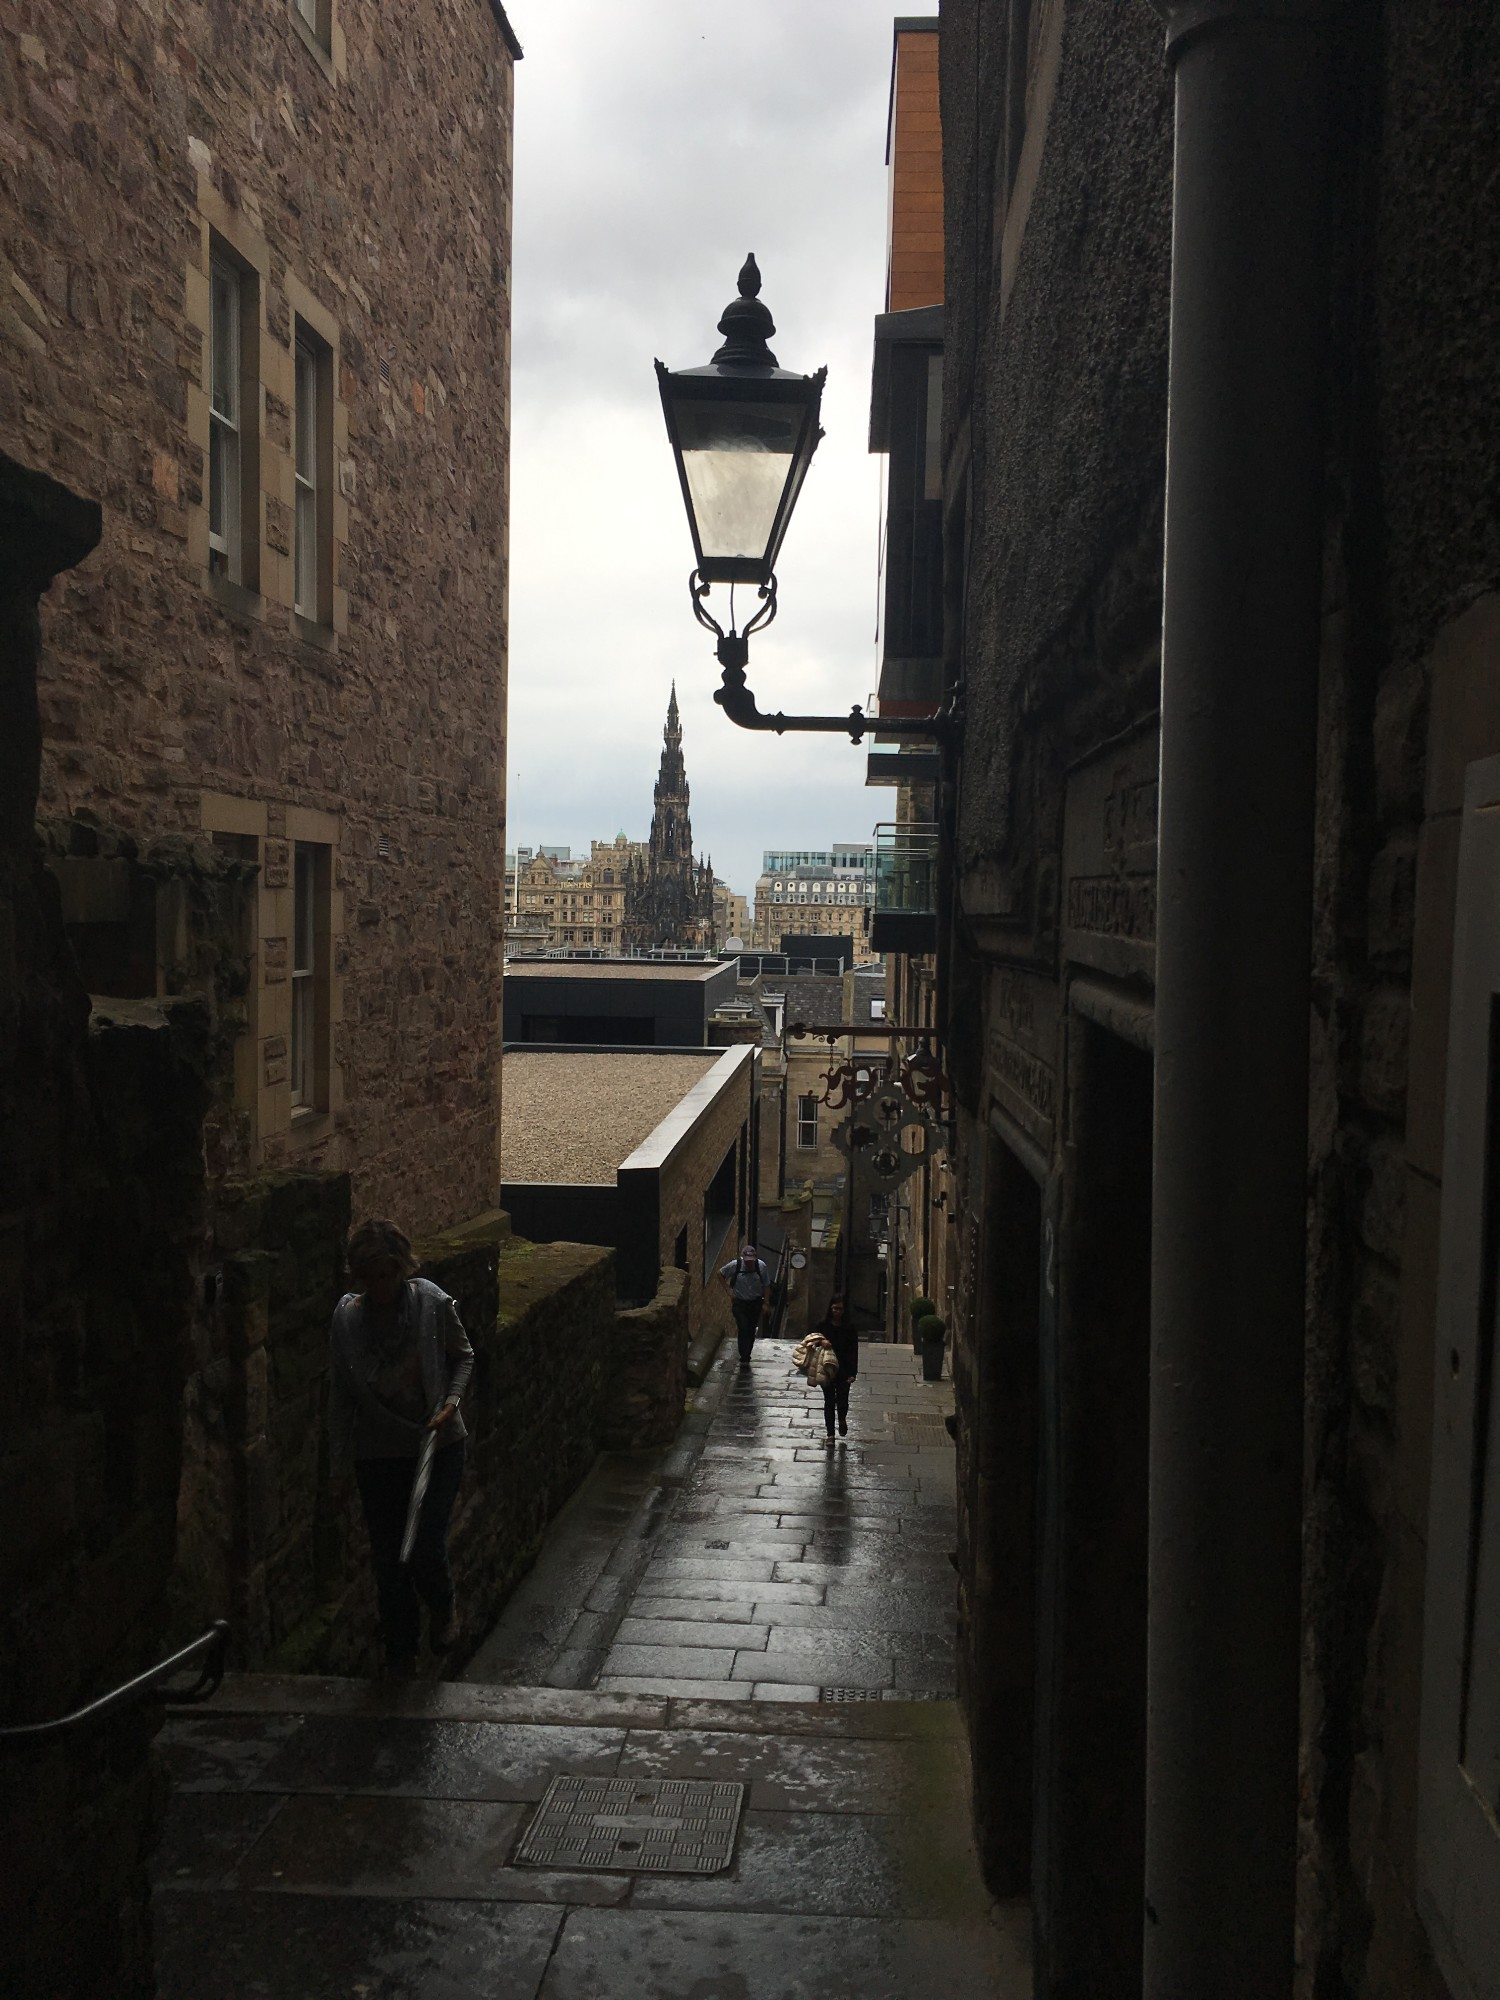 View of a narrow close with a lamp overhead - tips for planning a trip to Edinburgh, Scotland, from Wanderful